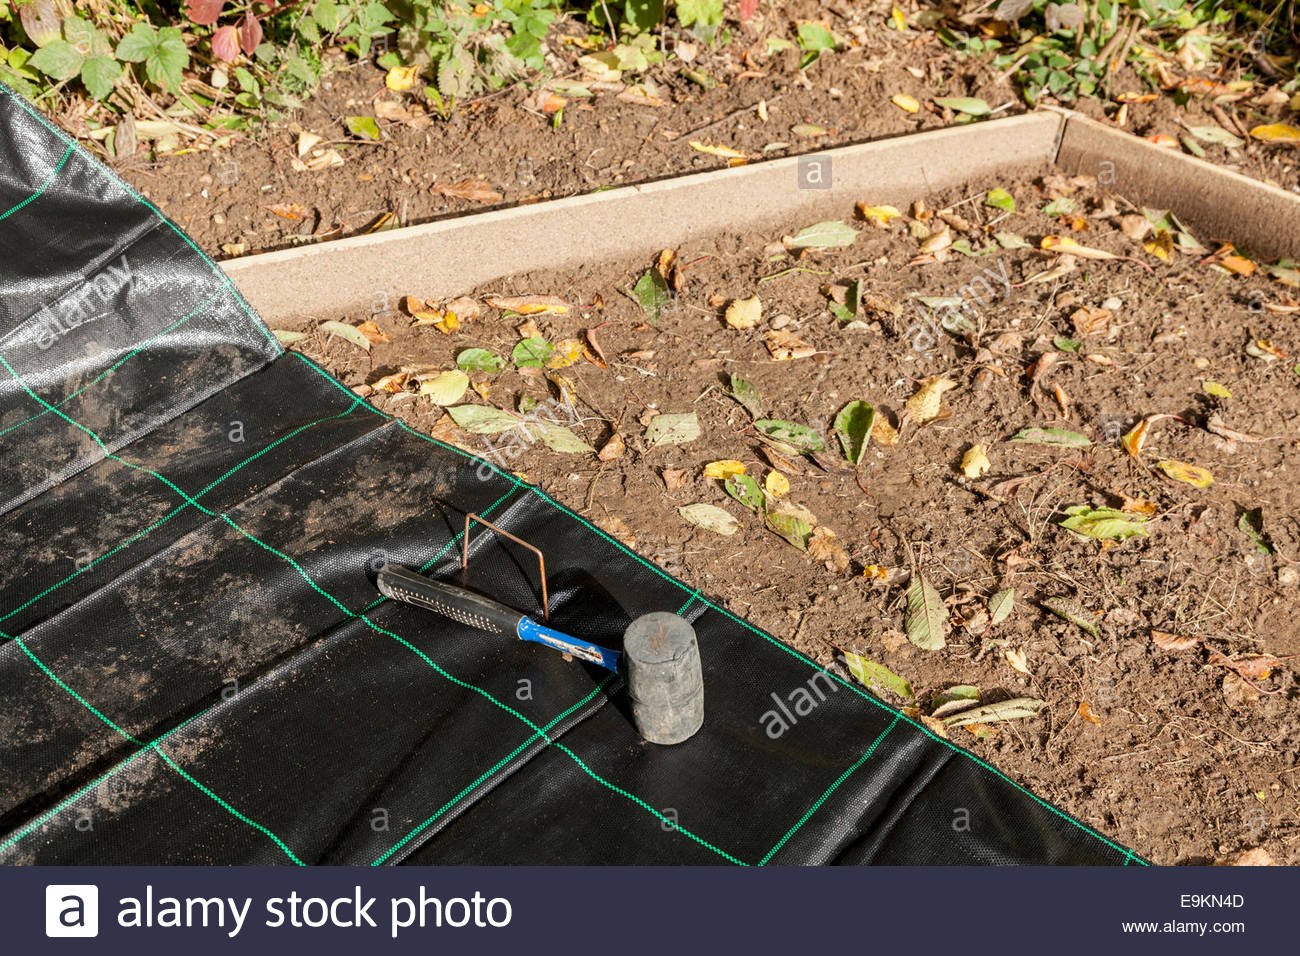 Fabric for controlling weeds - Stock Image